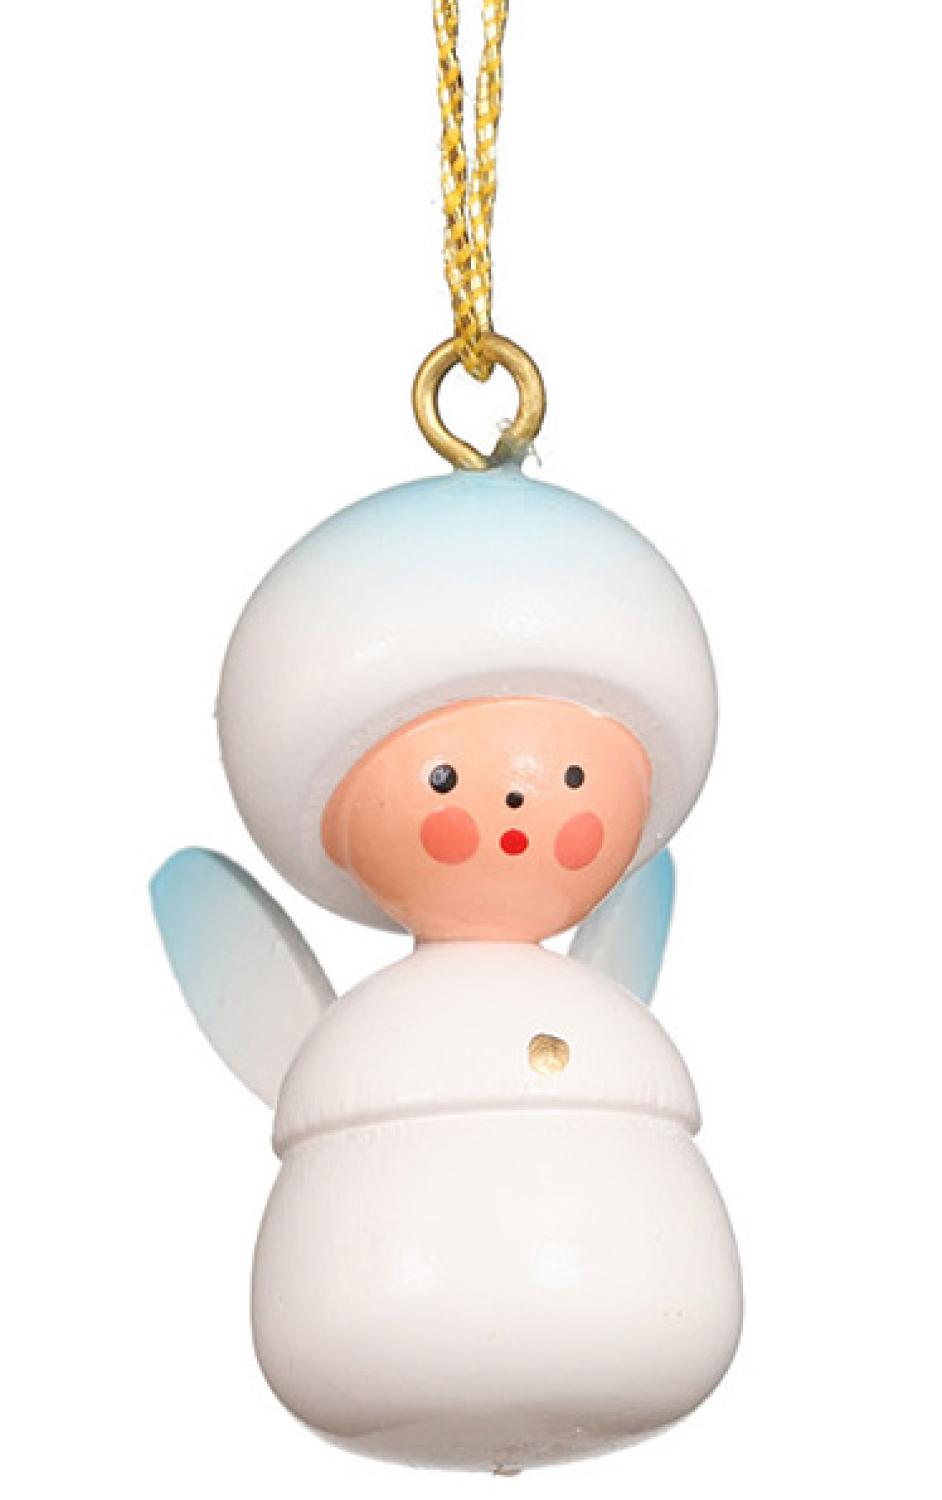 10-0376 - Christian Ulbricht Ornament - Mini-Angel - 1.25